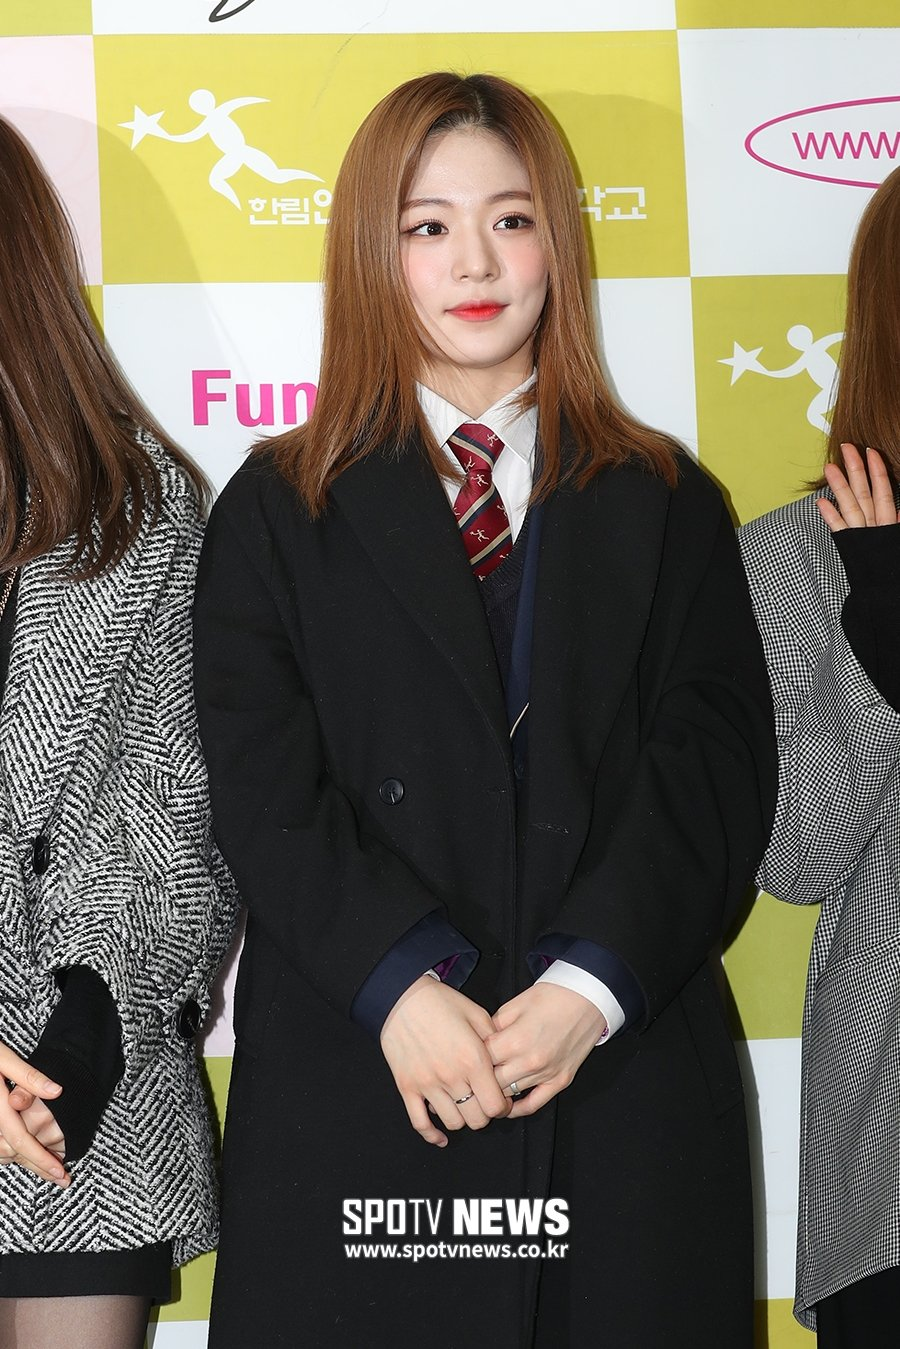 fromis 9, fromis 9 profile, fromis 9 facts, fromis 9 weight, fromis 9 facts, fromis 9 members, fromis 9 graduate, fromis 9 hanlim, fromis 9 chaeyoung, chaeyoung